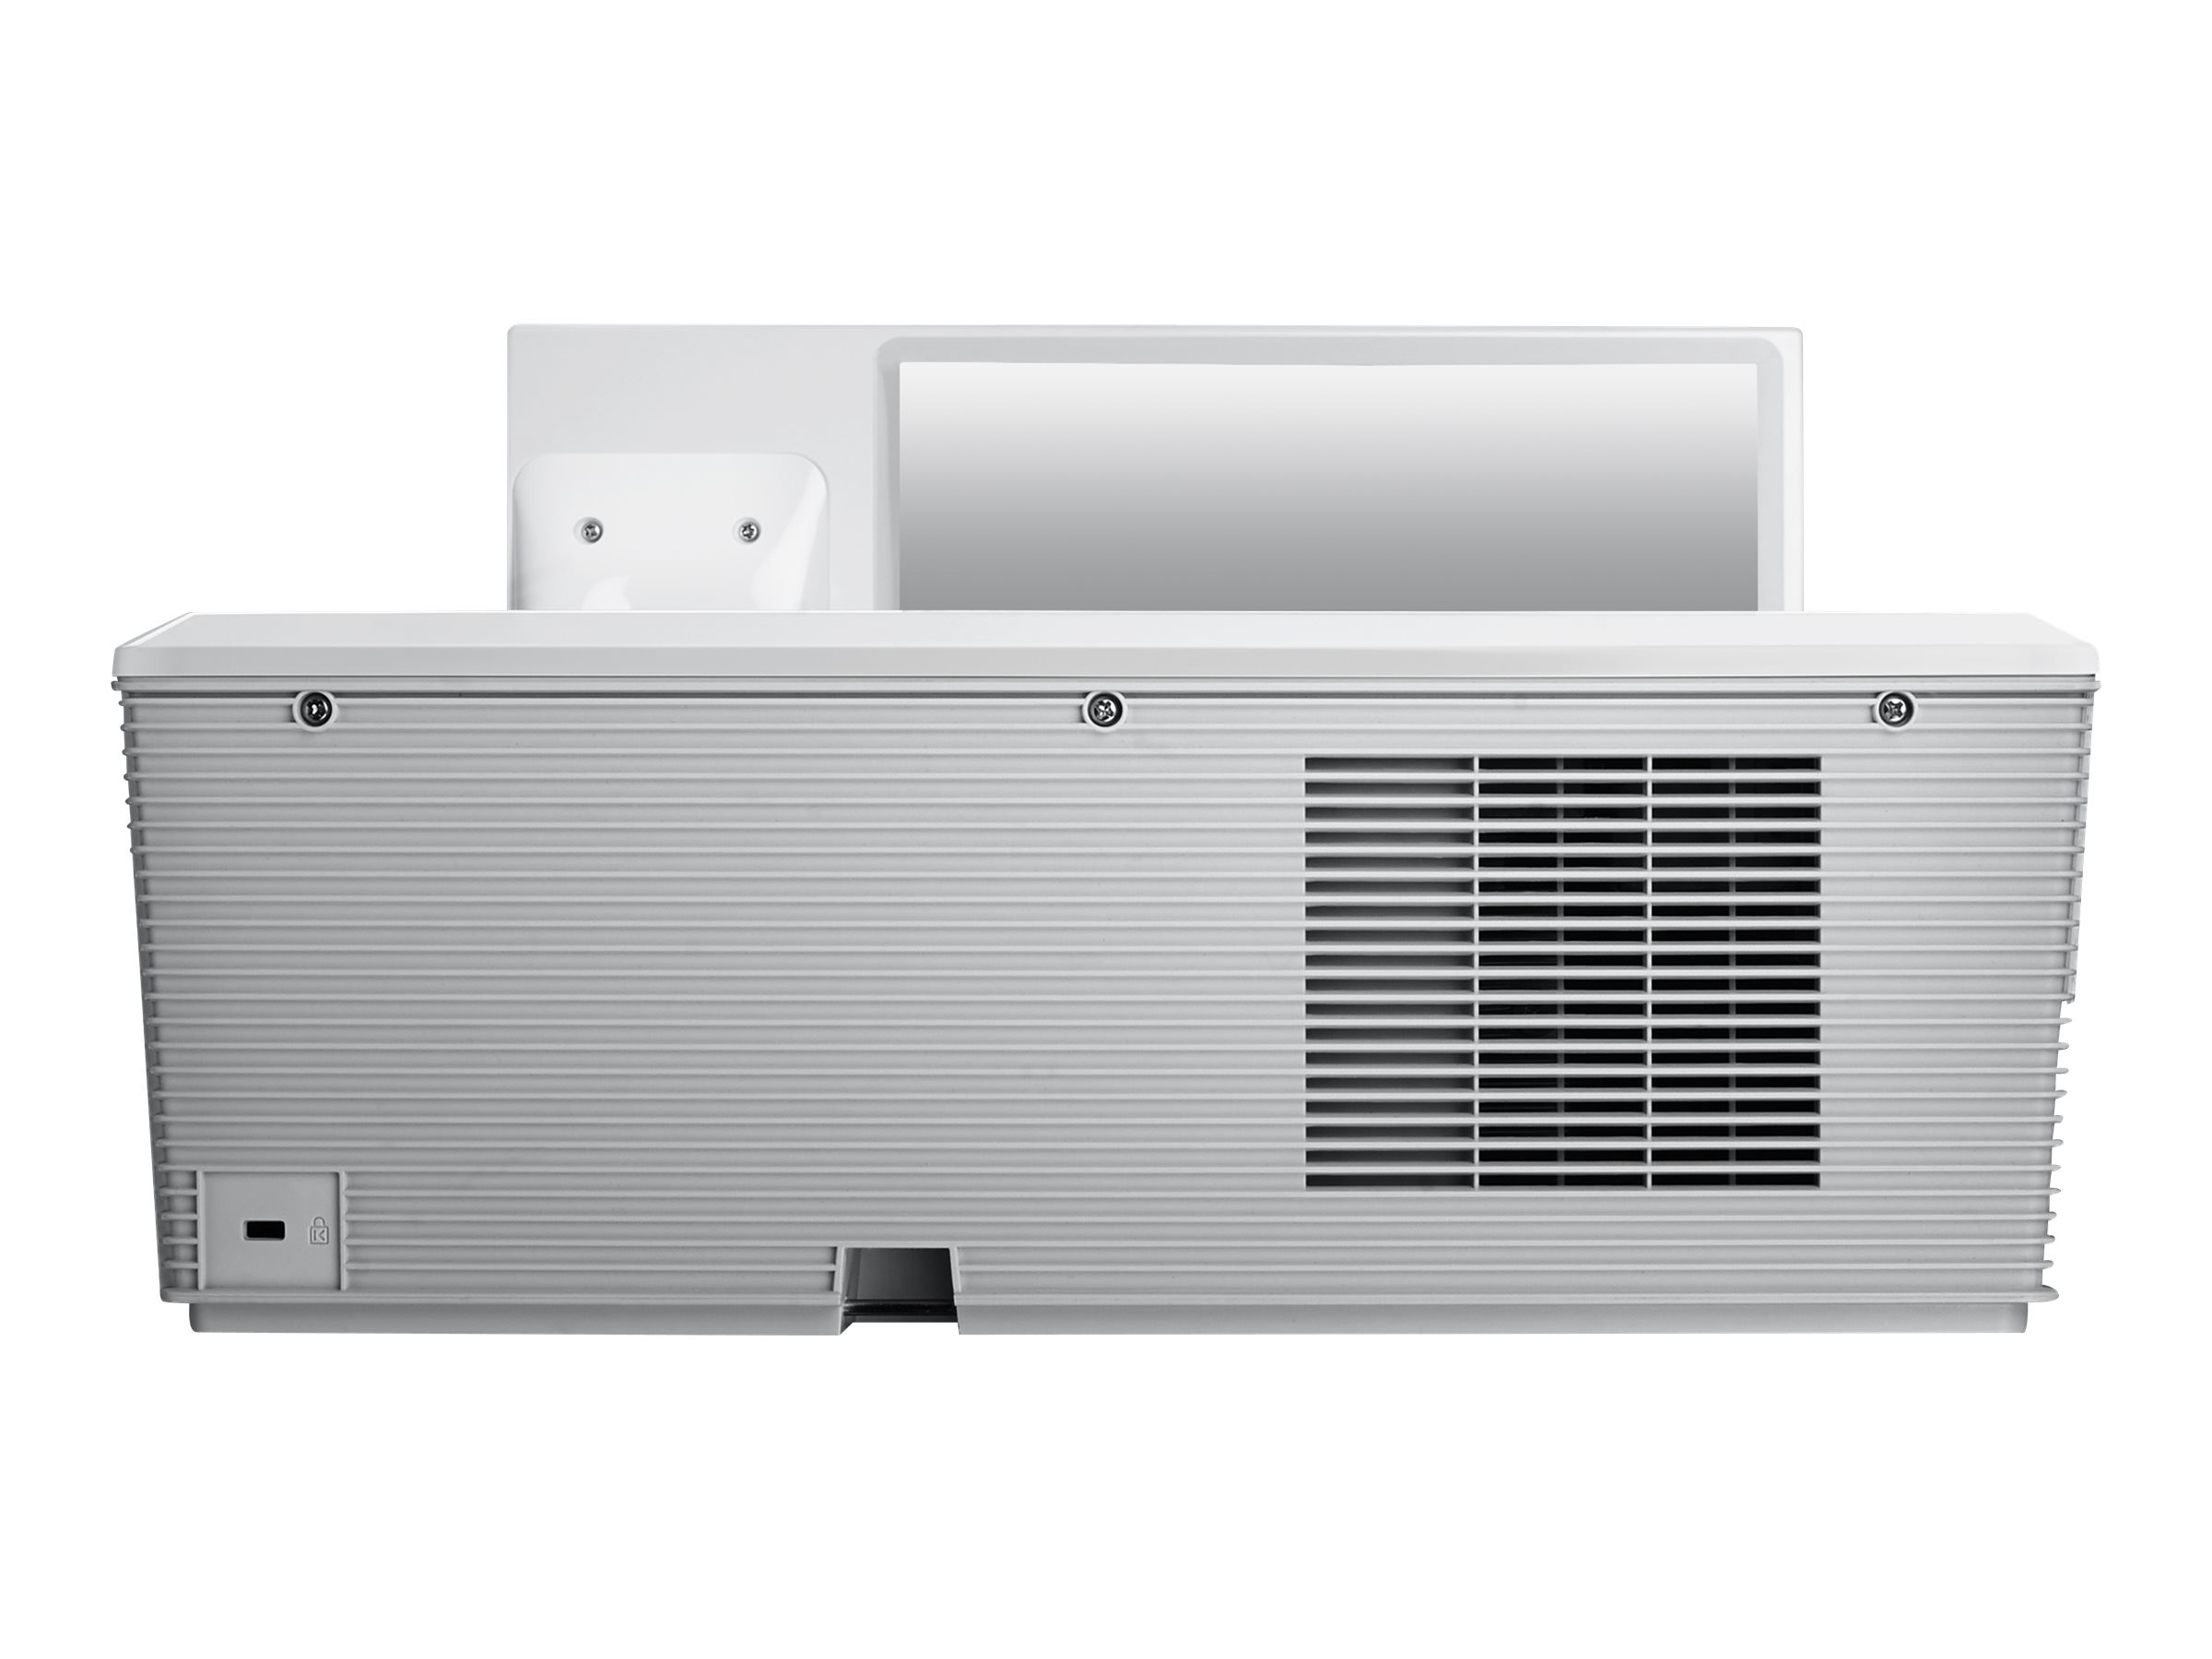 Dell S510 WXGA Interactive Projector, 3100 Lumens, White, S510